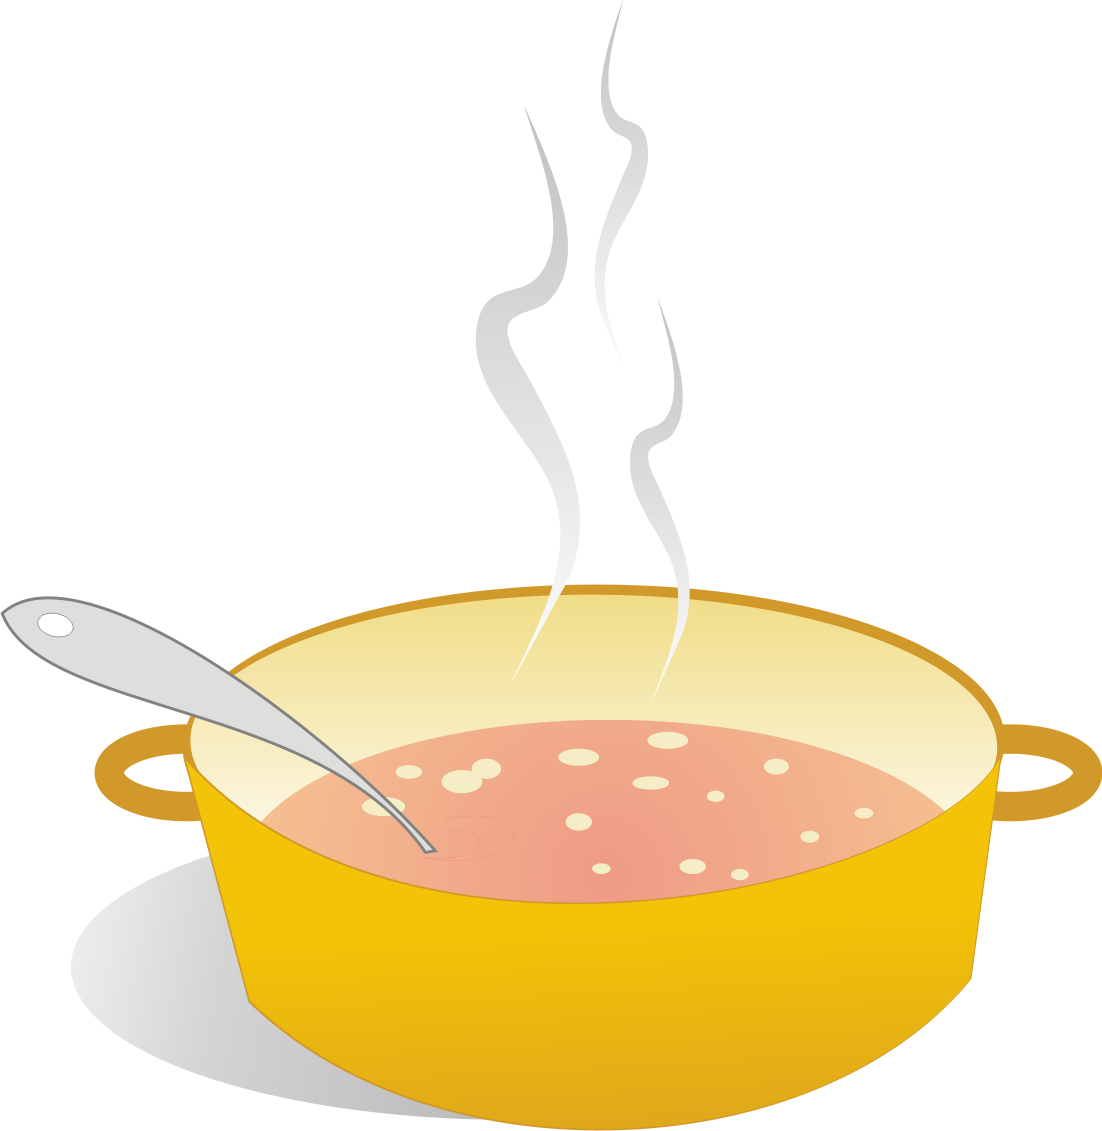 Cartoon Bowl Of Soup Clip art image of soup can